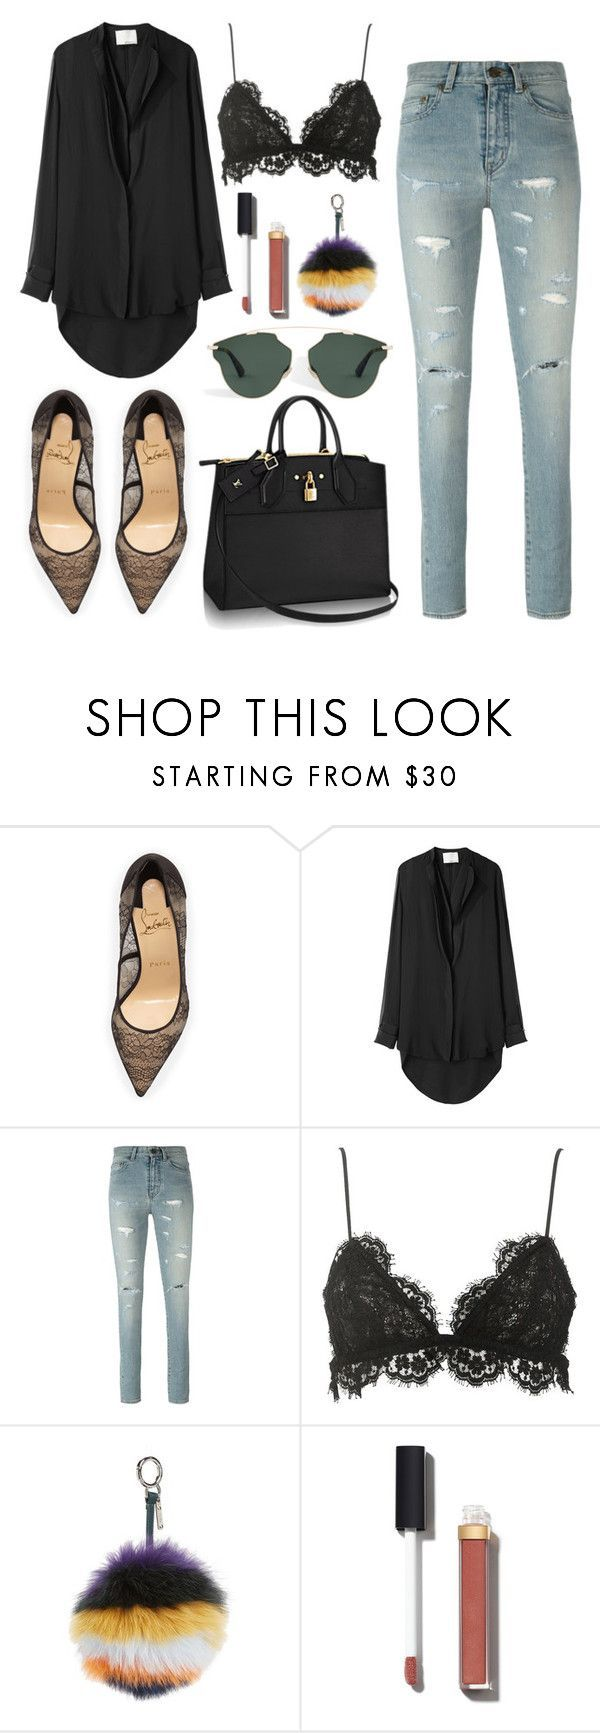 """Sem título #283"" by justfash ❤ liked on Polyvore featuring Christian Louboutin, 3.1 Phillip Lim, Yves Saint Laurent, Isabel Marant, Fendi and Chanel"